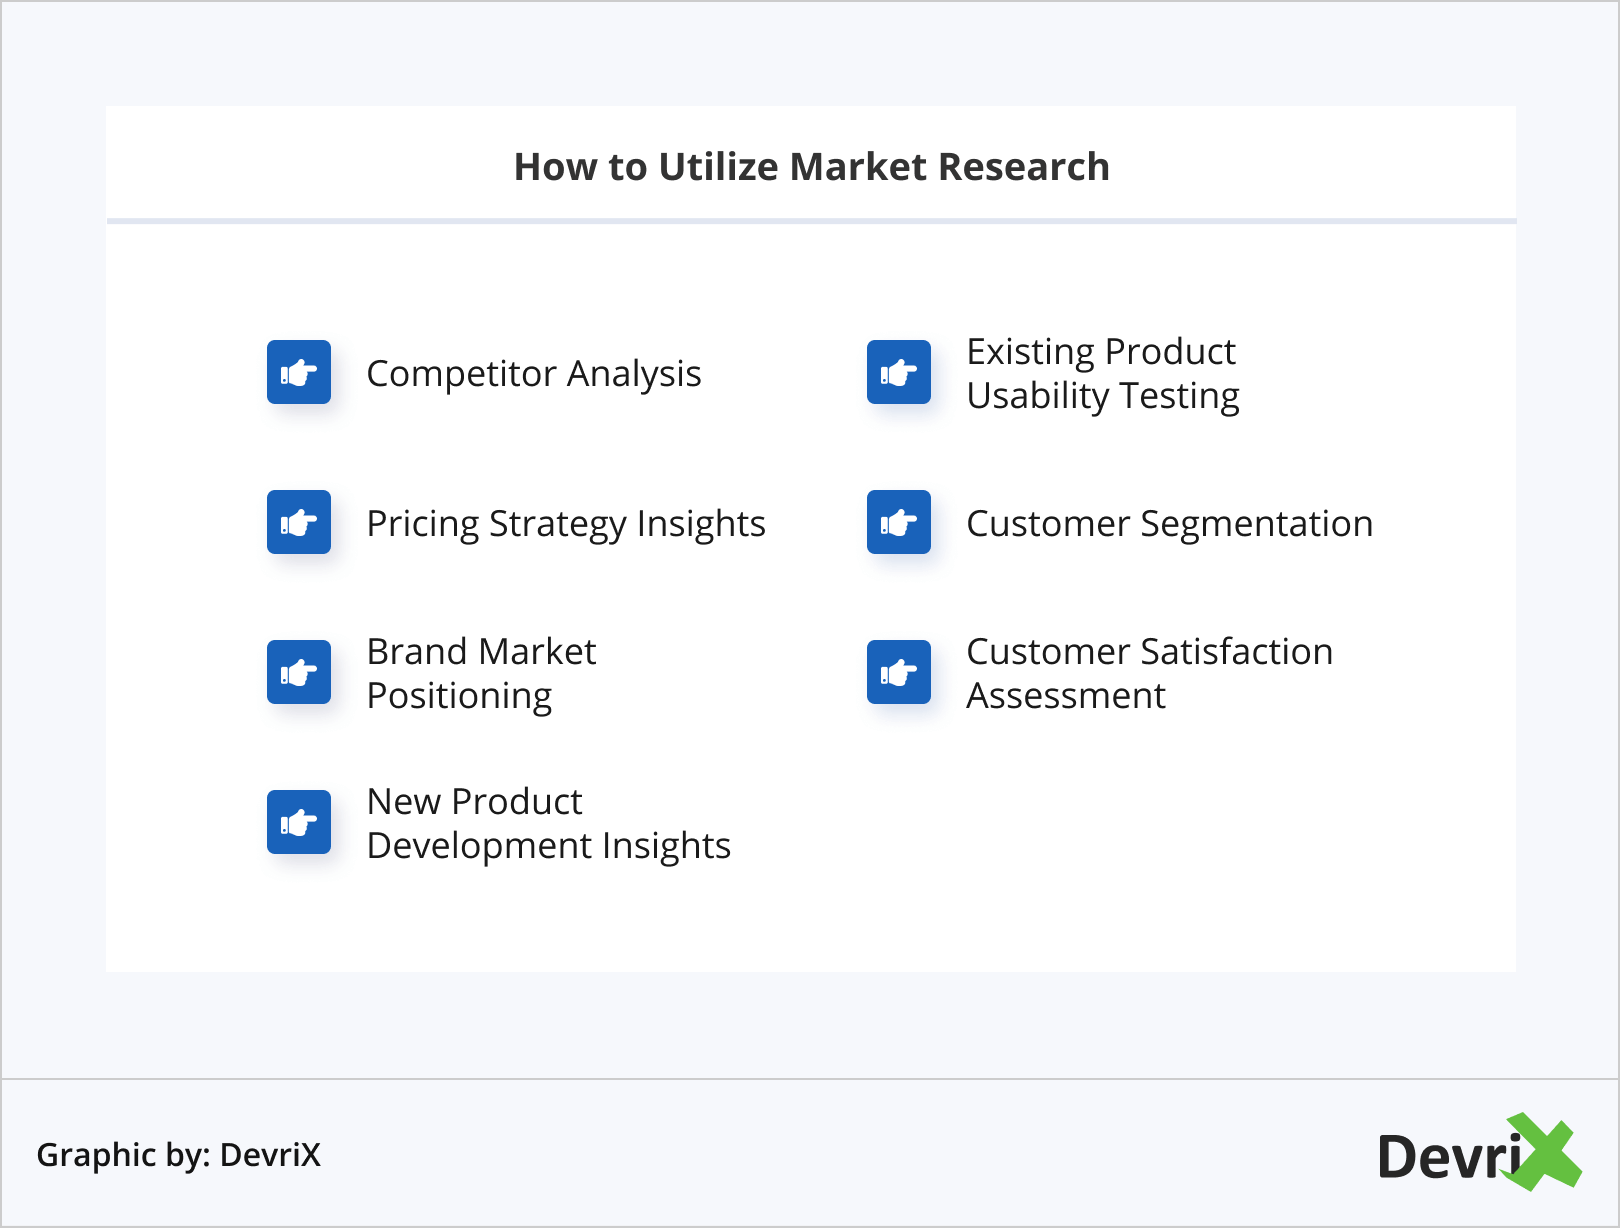 How to Utilize Market Research